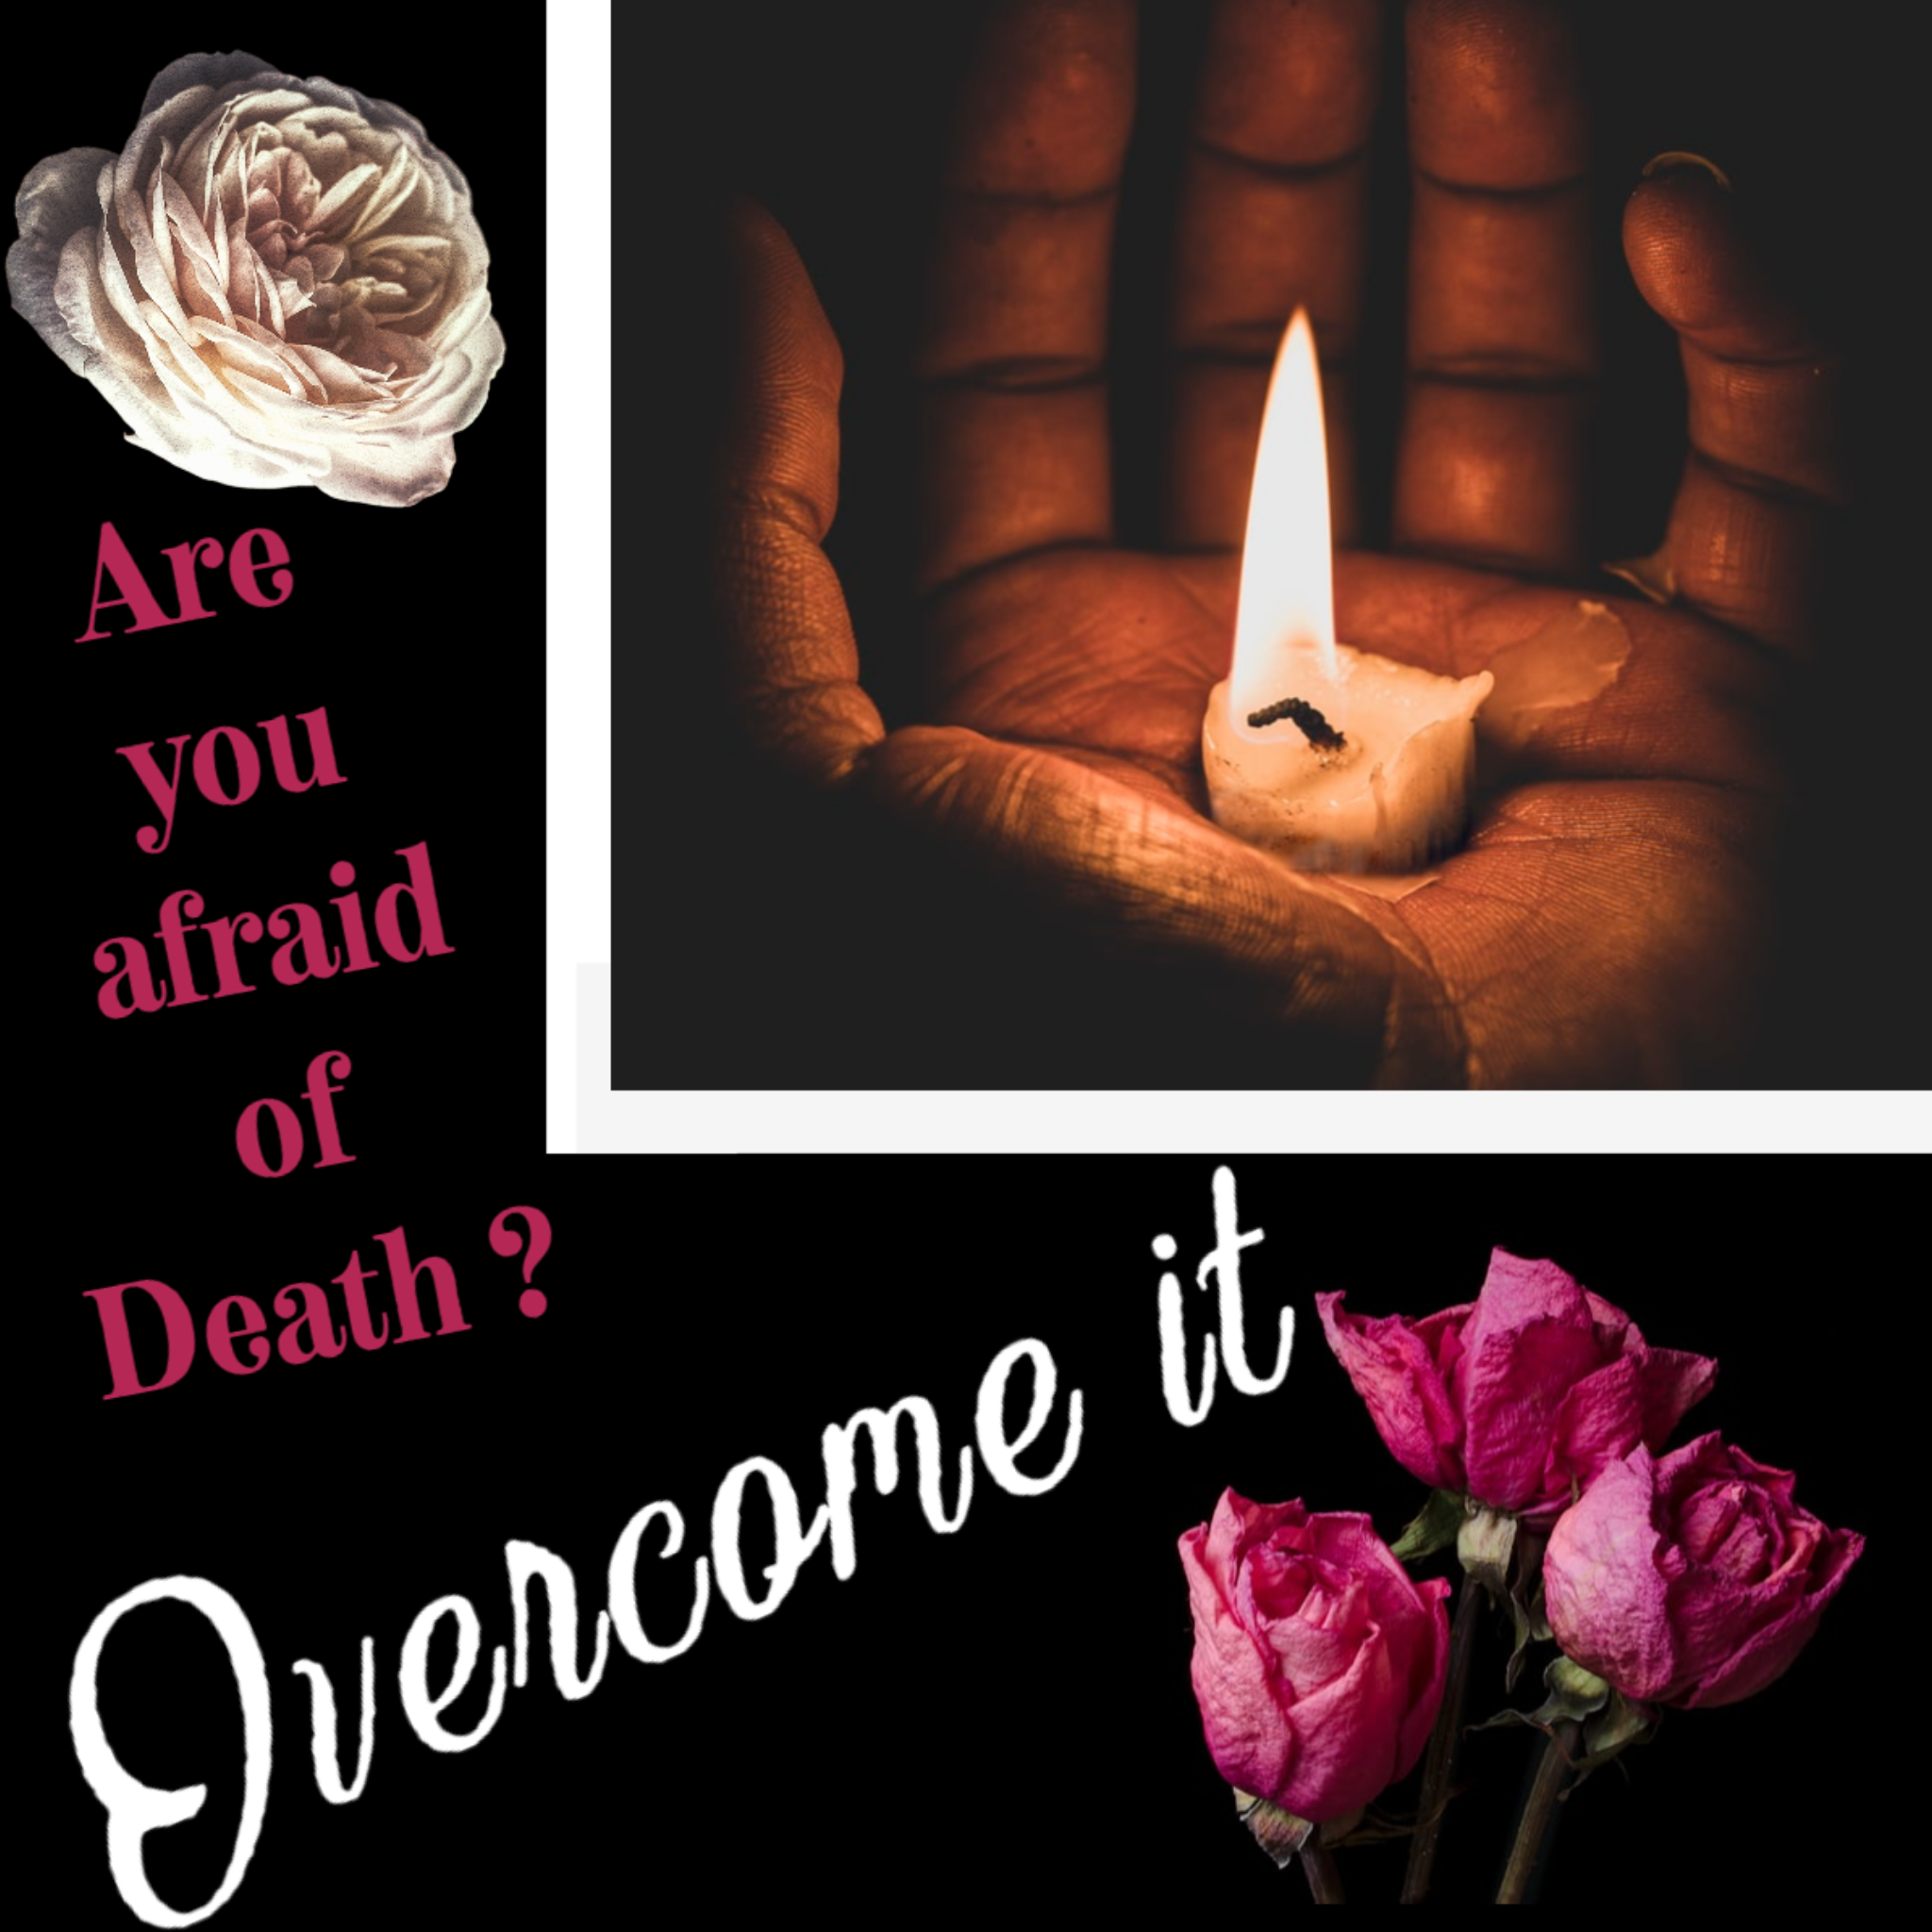 Are you afraid of death_overcome it